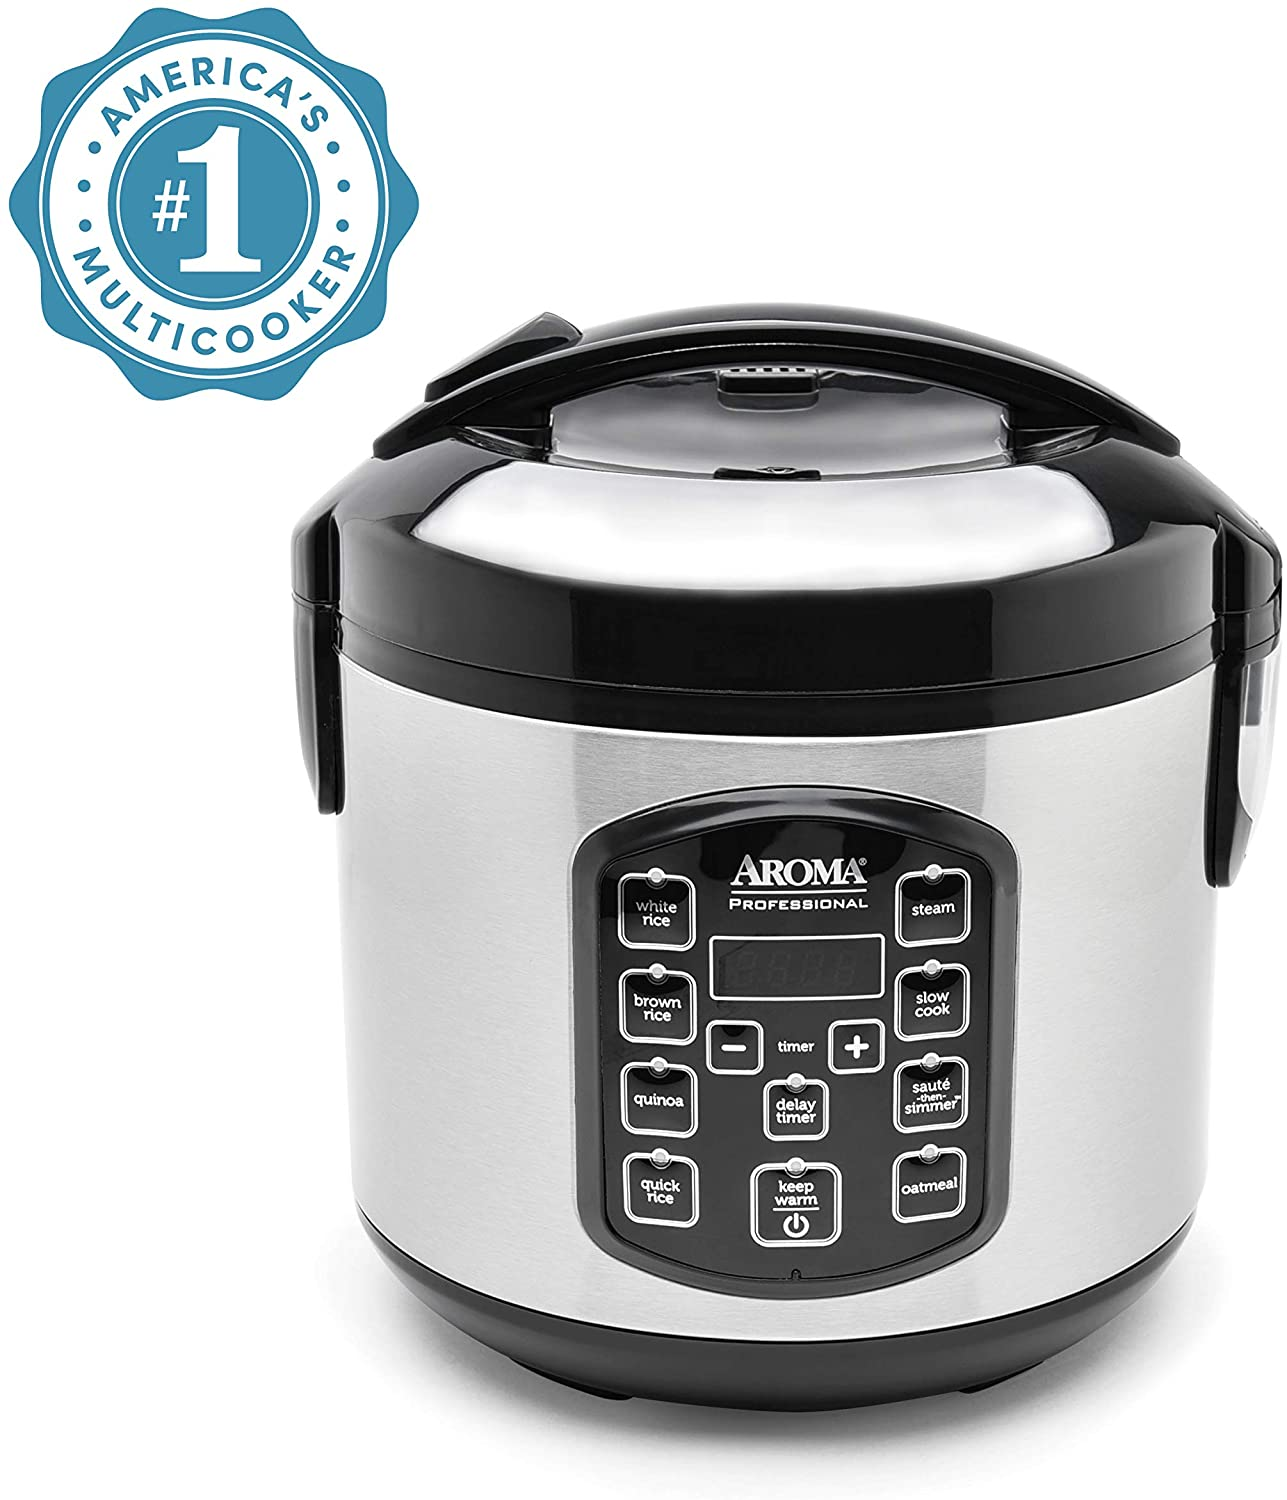 Aroma Housewares ARC-954SBD Rice Cooker, 4-Cup Uncooked